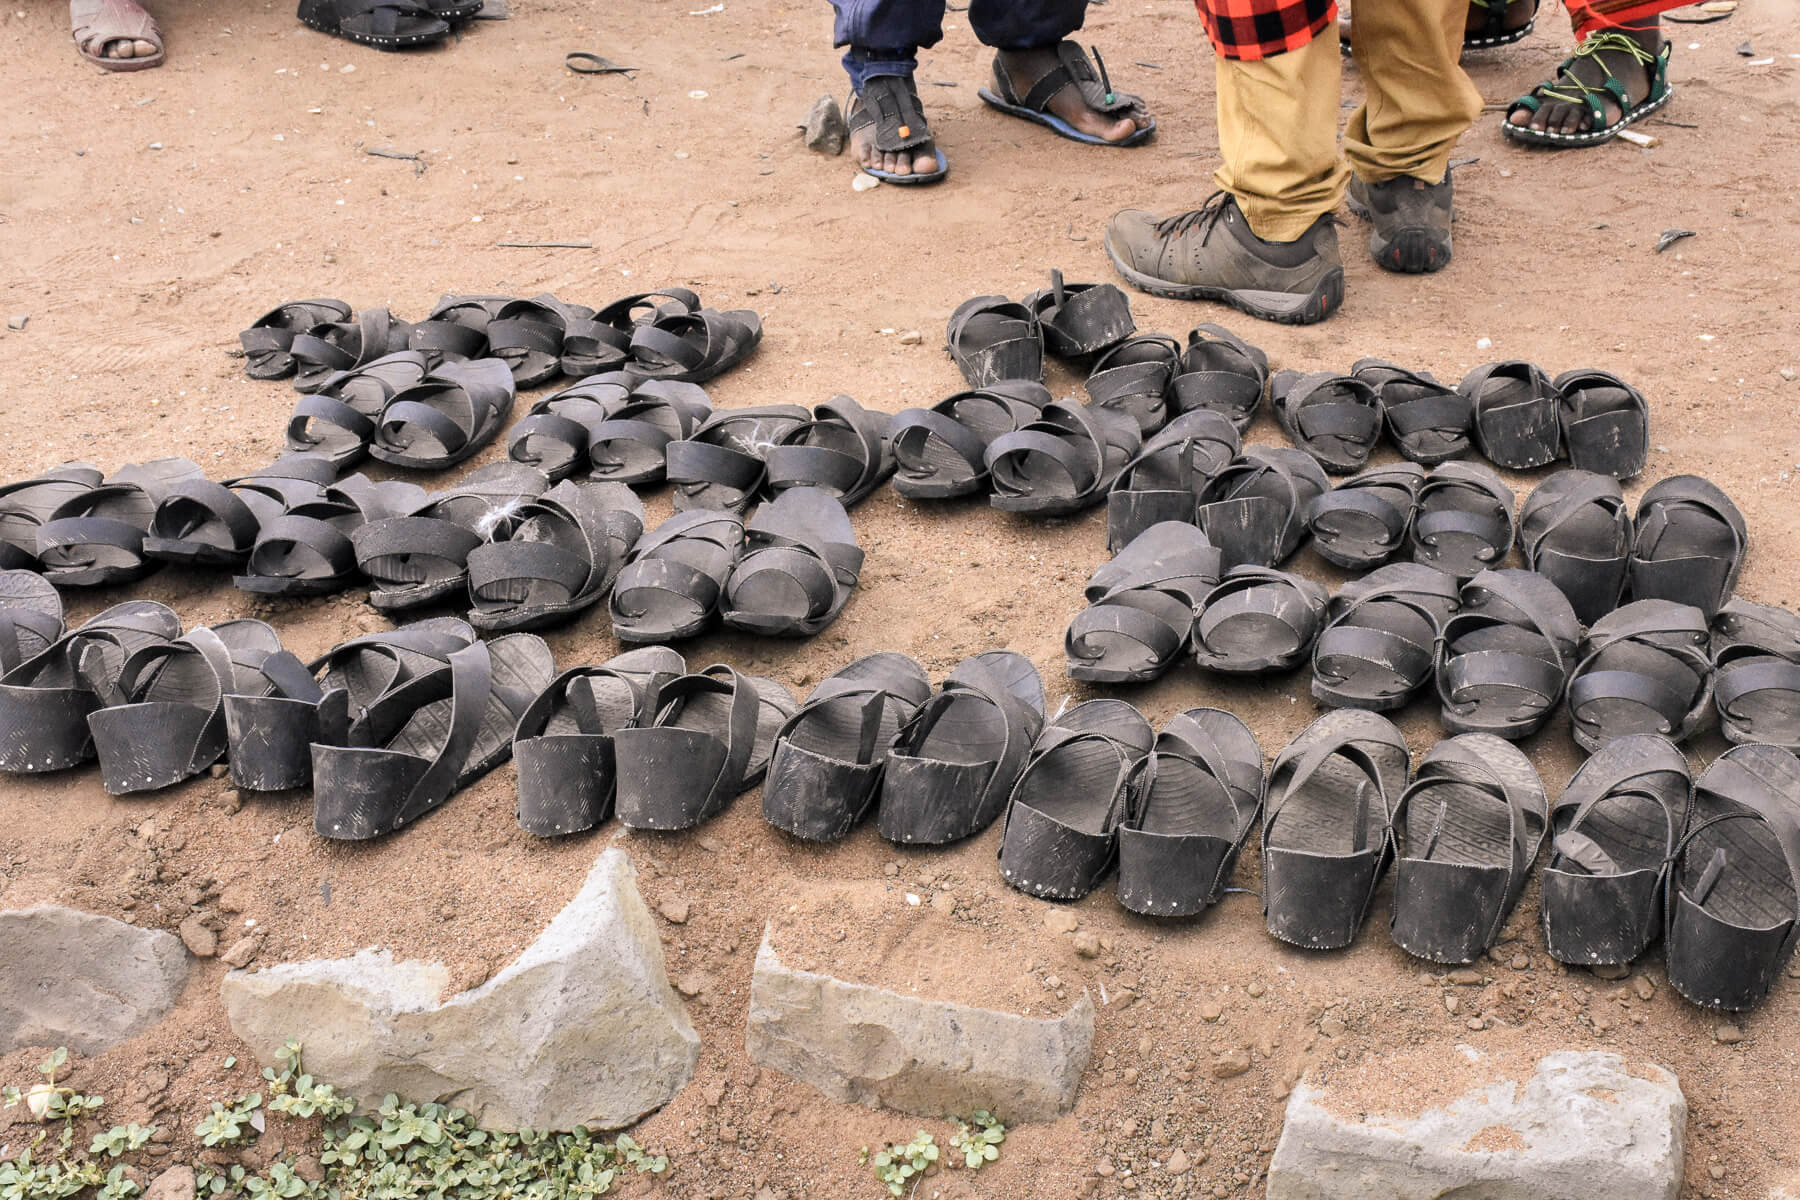 A huge selection of shoes in a market, made from tyres